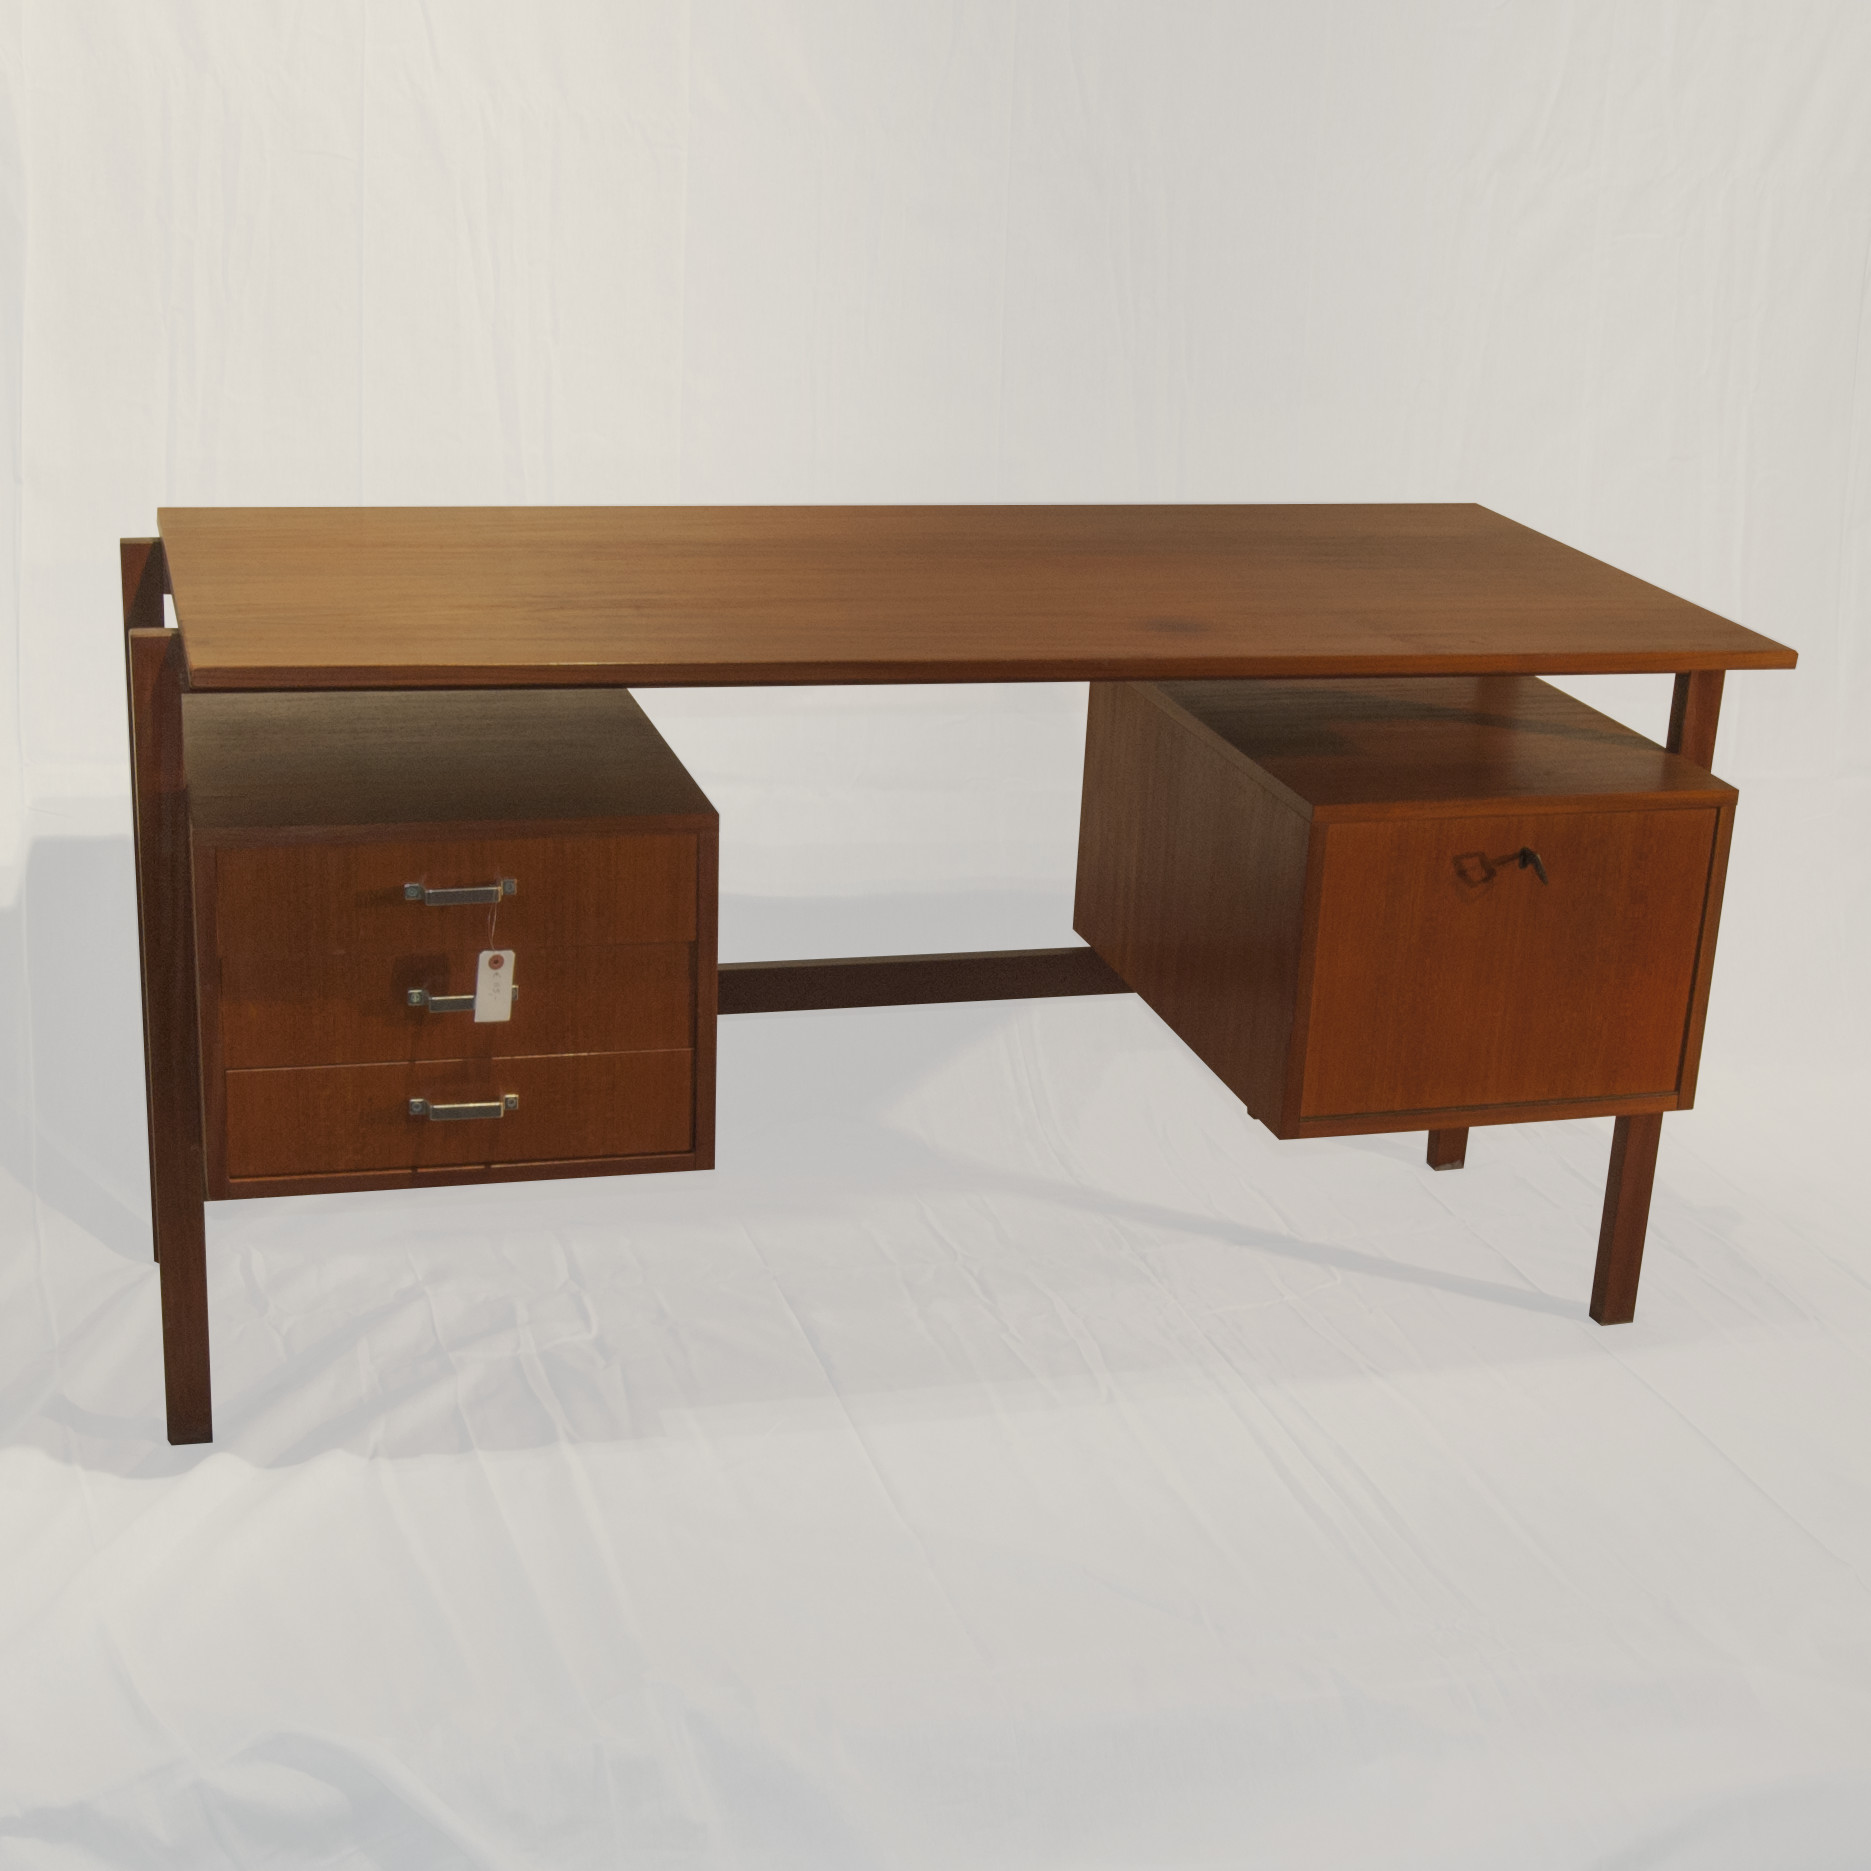 Top vintage bureau deens design teak jaren bureau with for Deens design meubelen